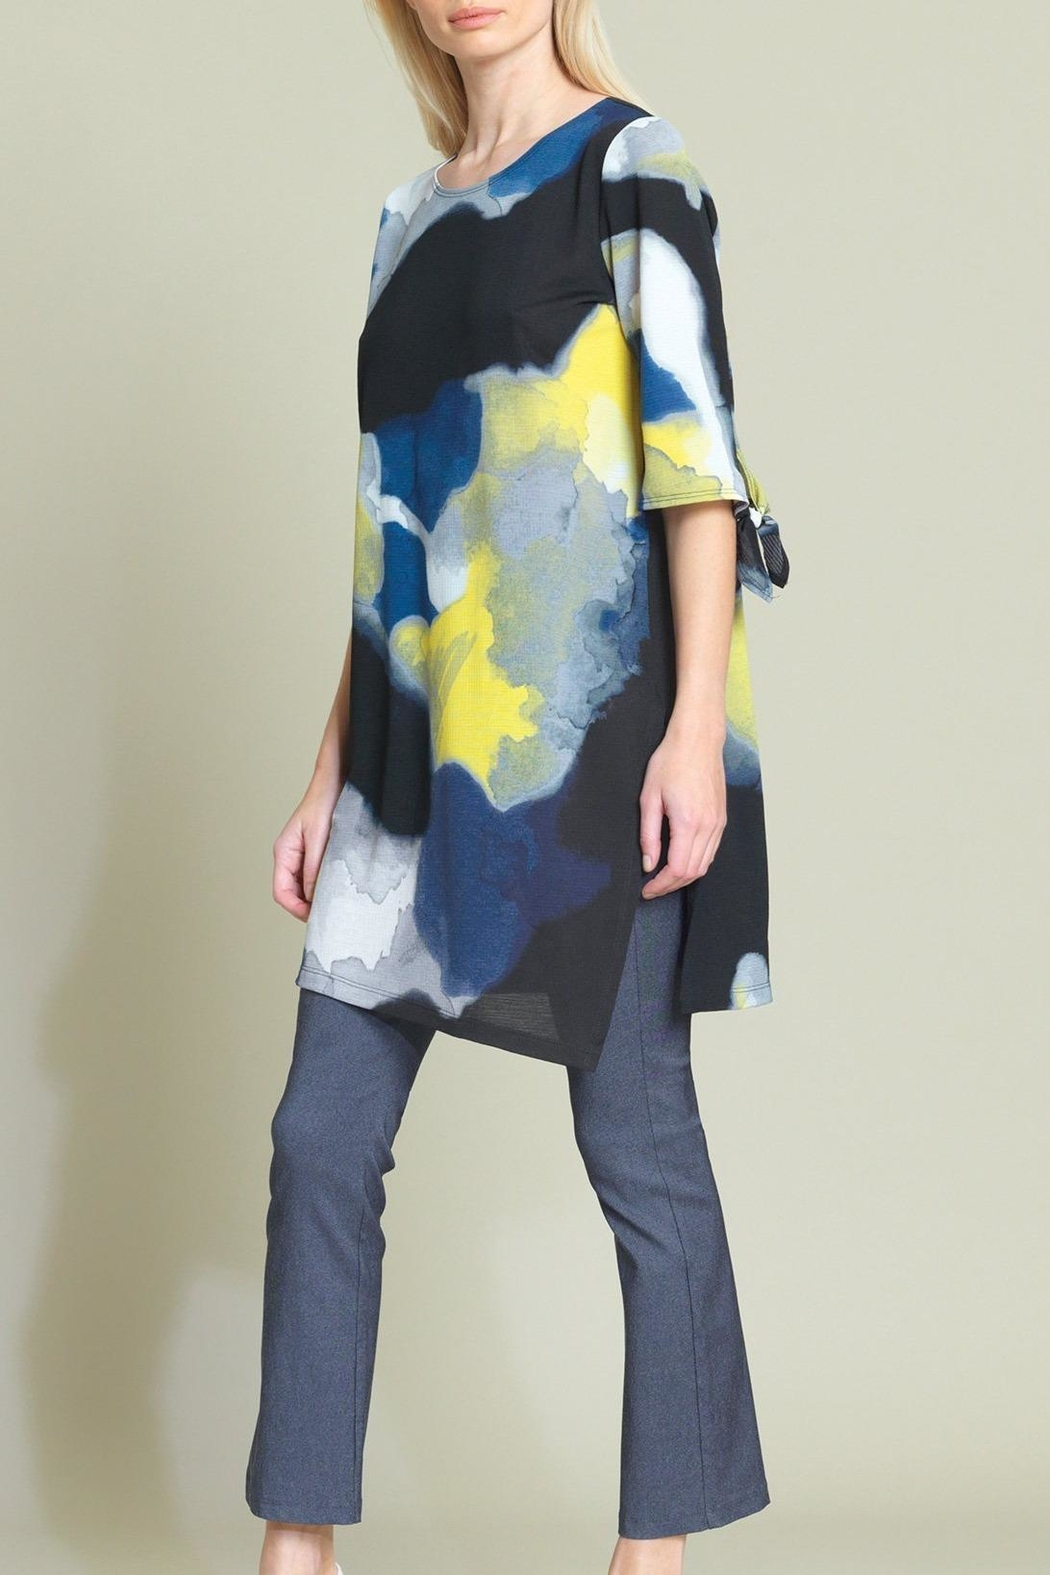 Clara Sunwoo Watercolor Print Tunic - Main Image